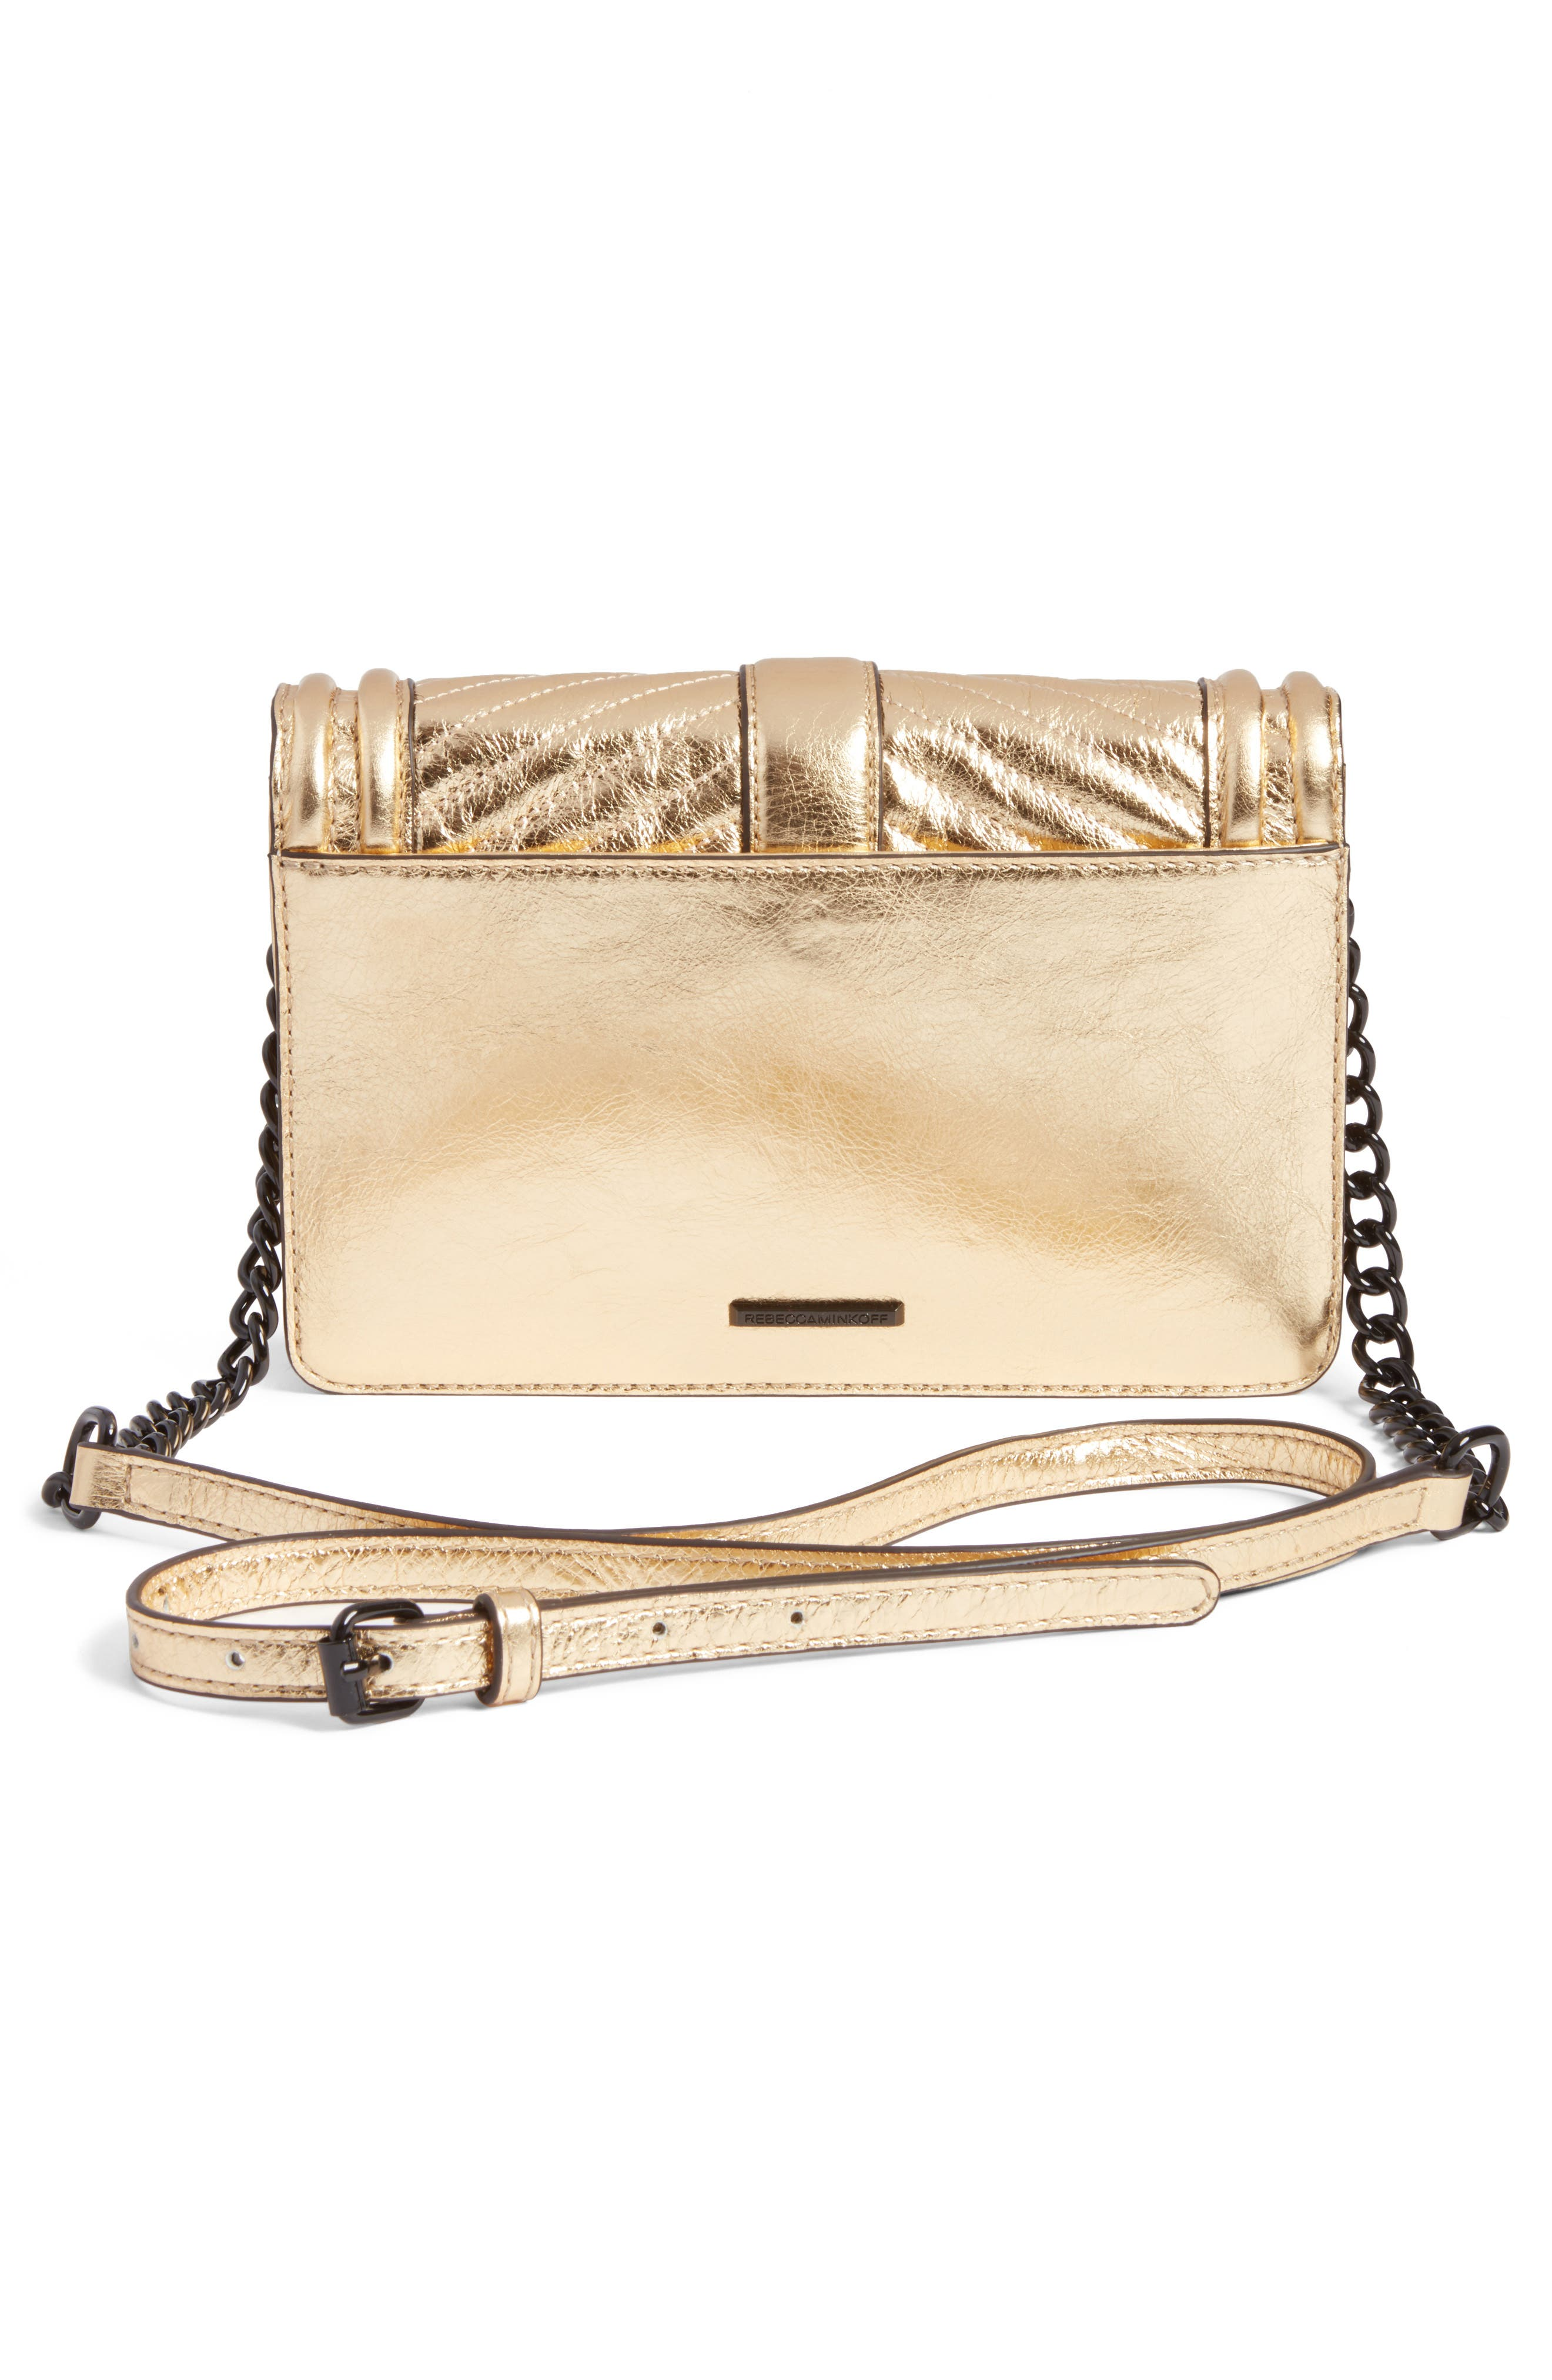 Small Love Metallic Leather Crossbody Bag,                             Alternate thumbnail 3, color,                             710